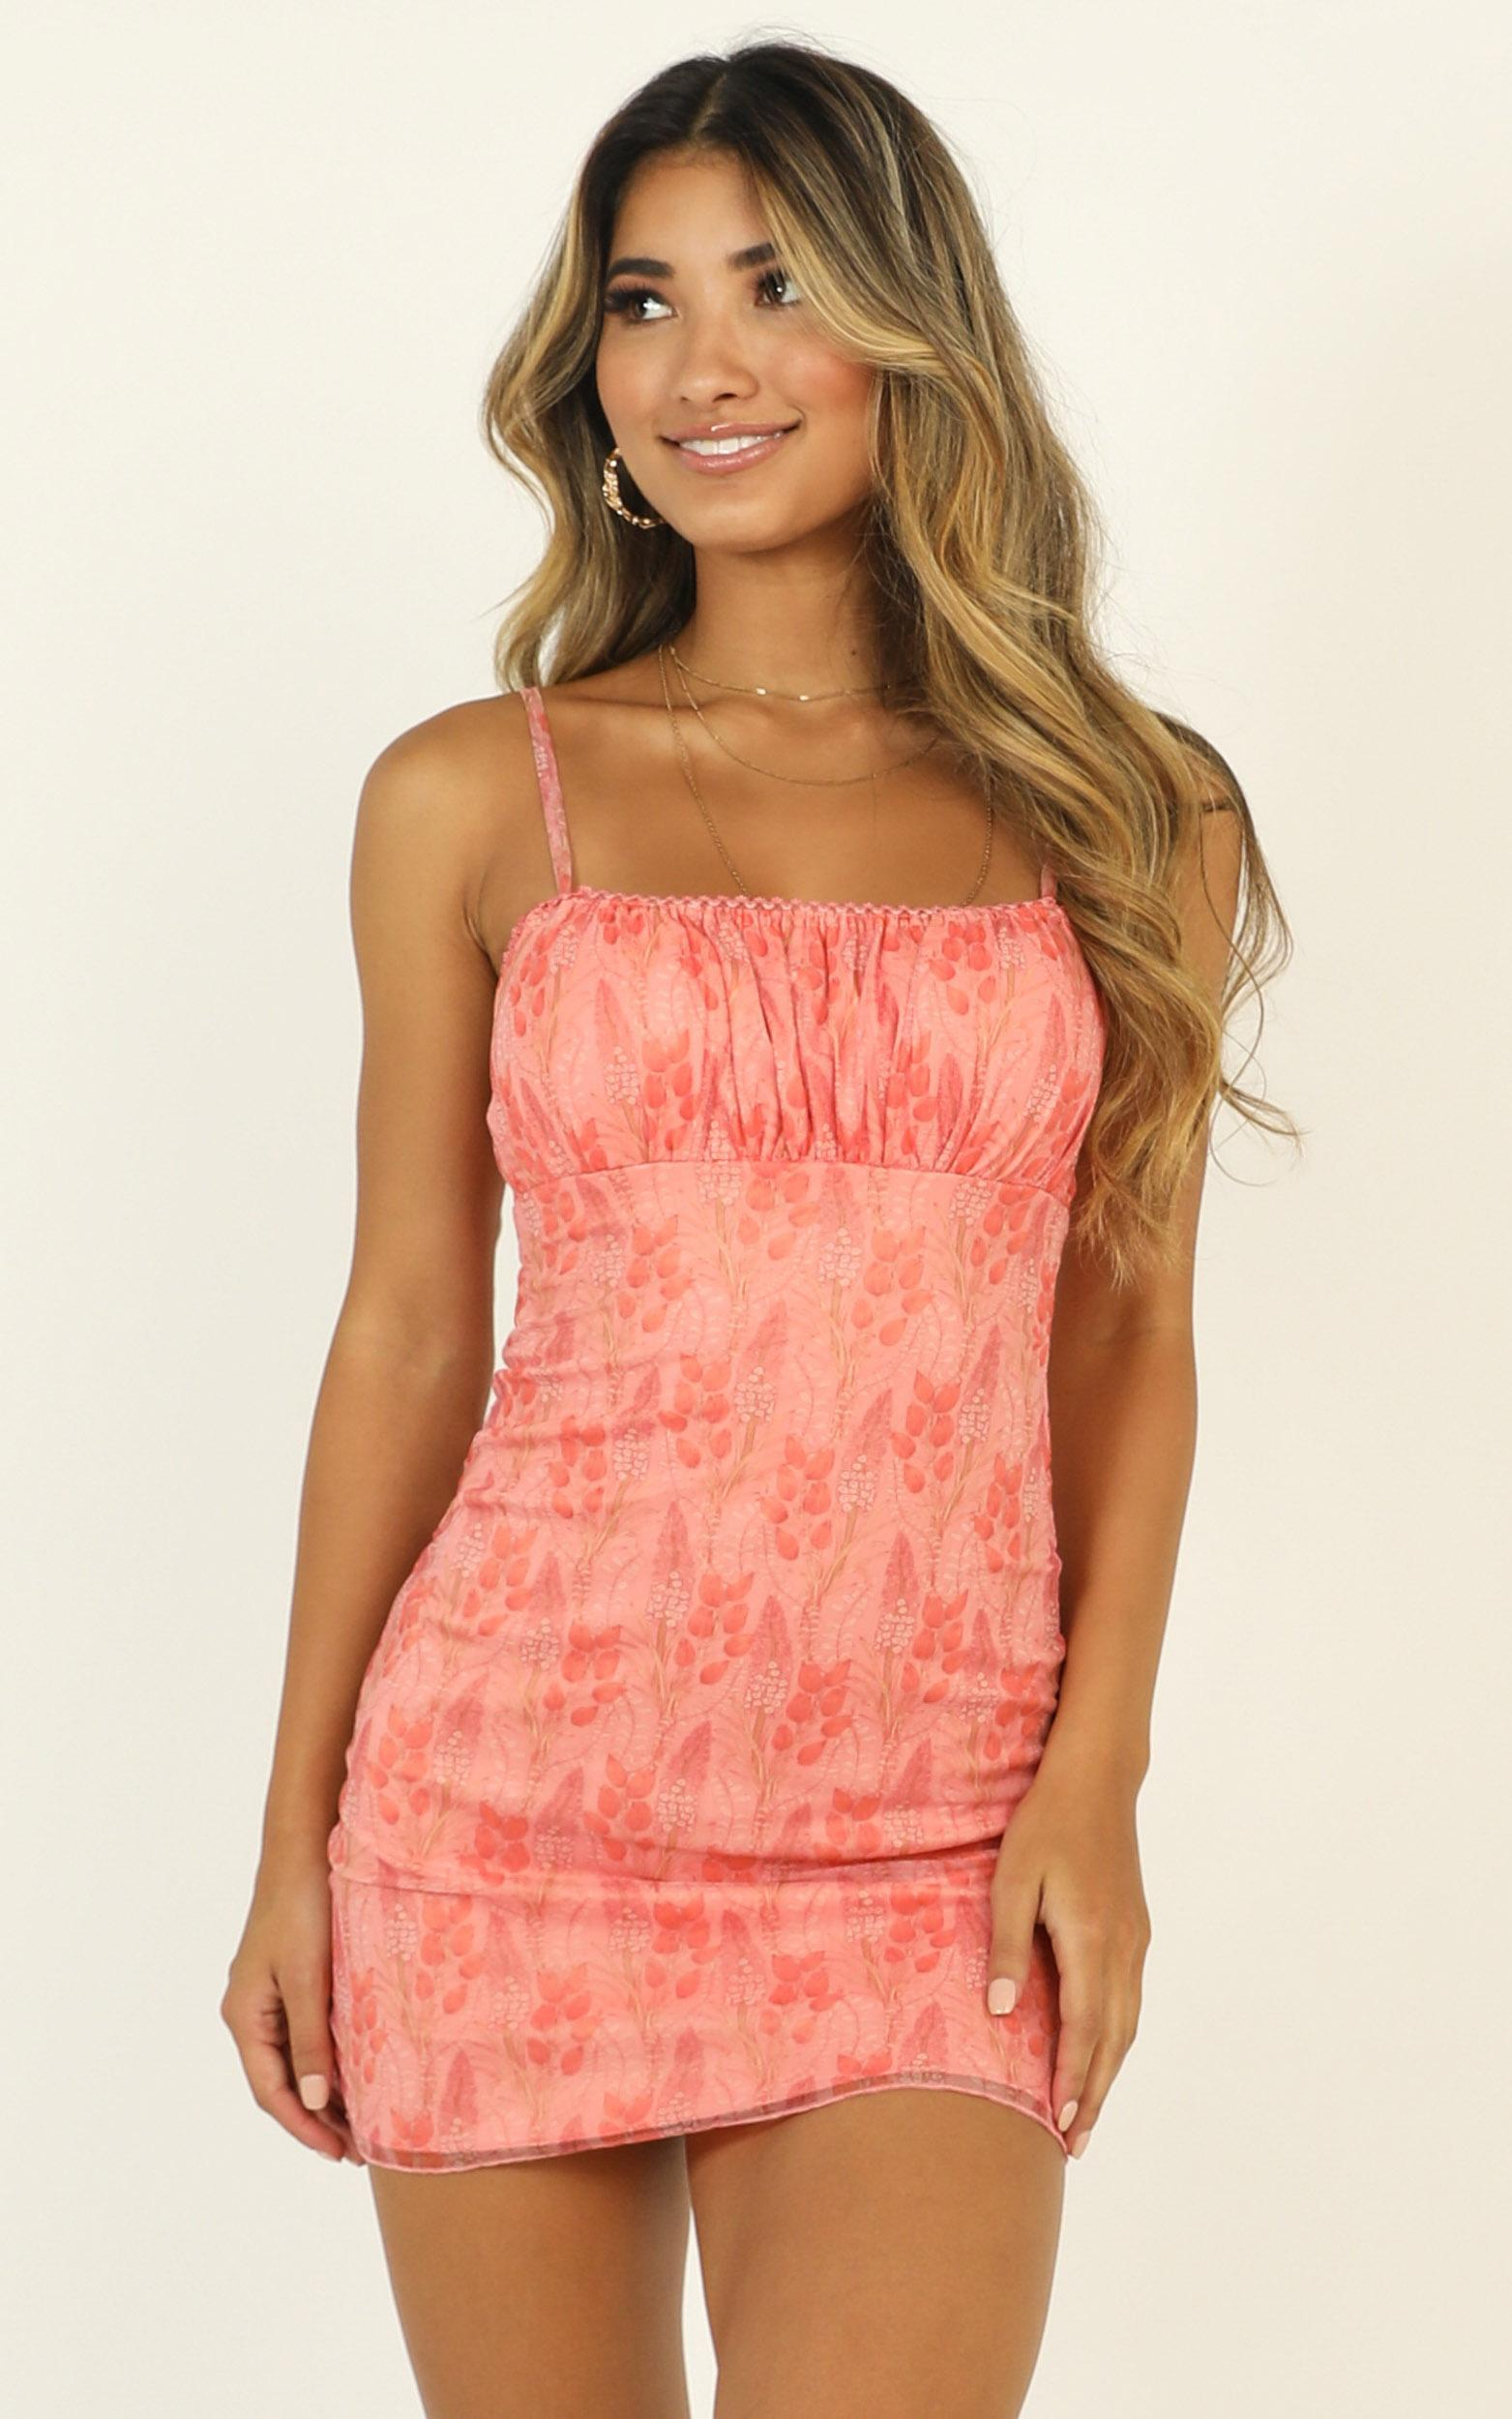 Walls Caving In dress in peach print - 16 (XXL), Pink, hi-res image number null